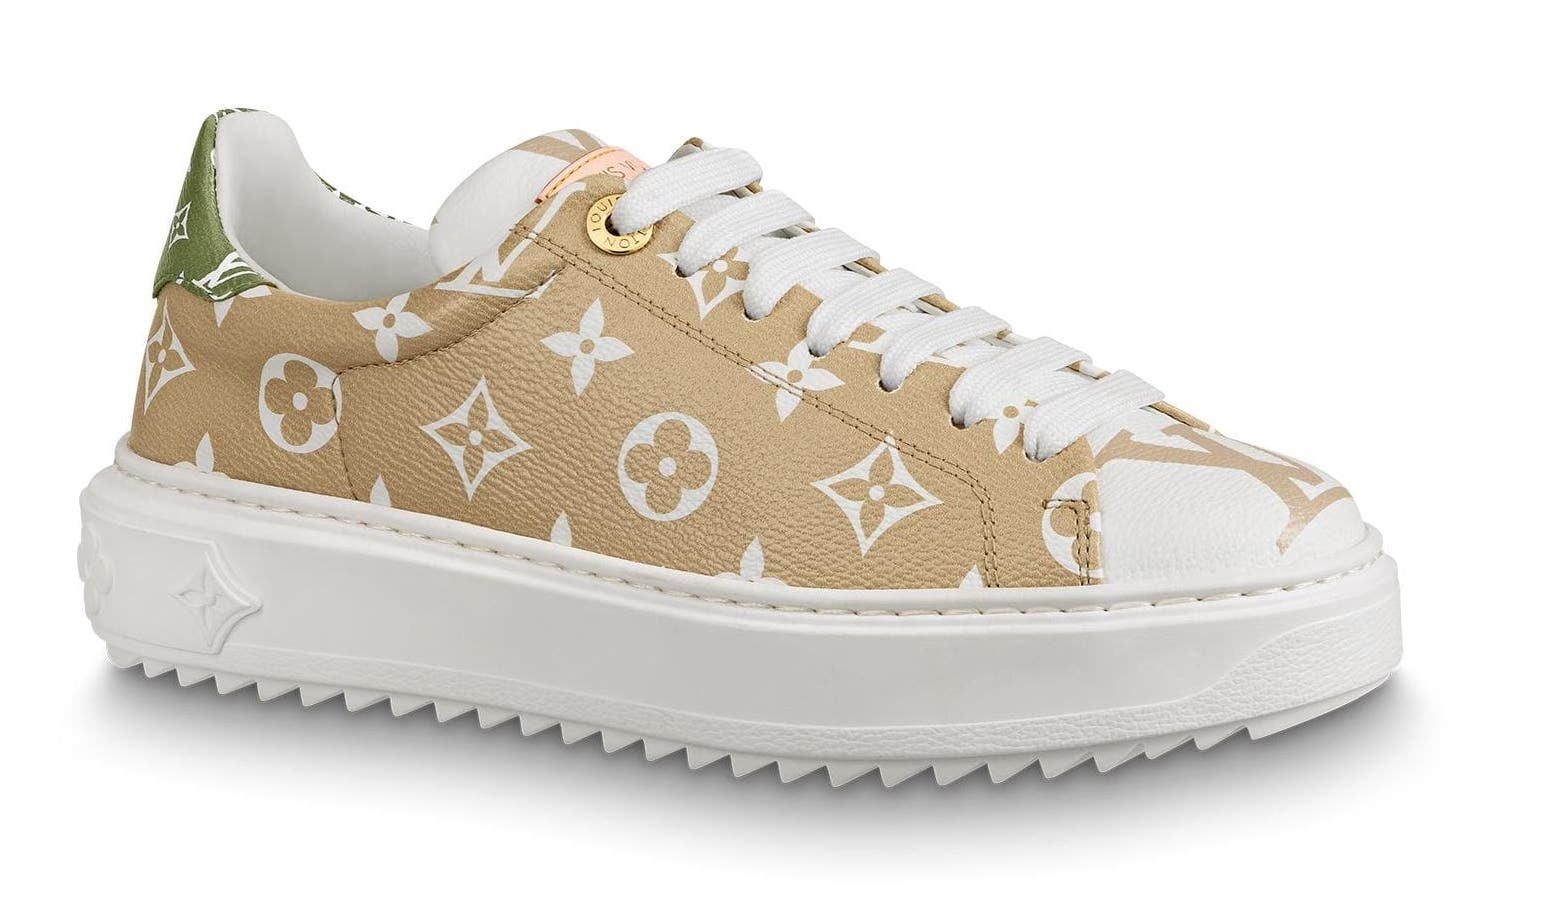 6eb51d0b83 Trainer Time Out Monogram Blanc (W) in Beige